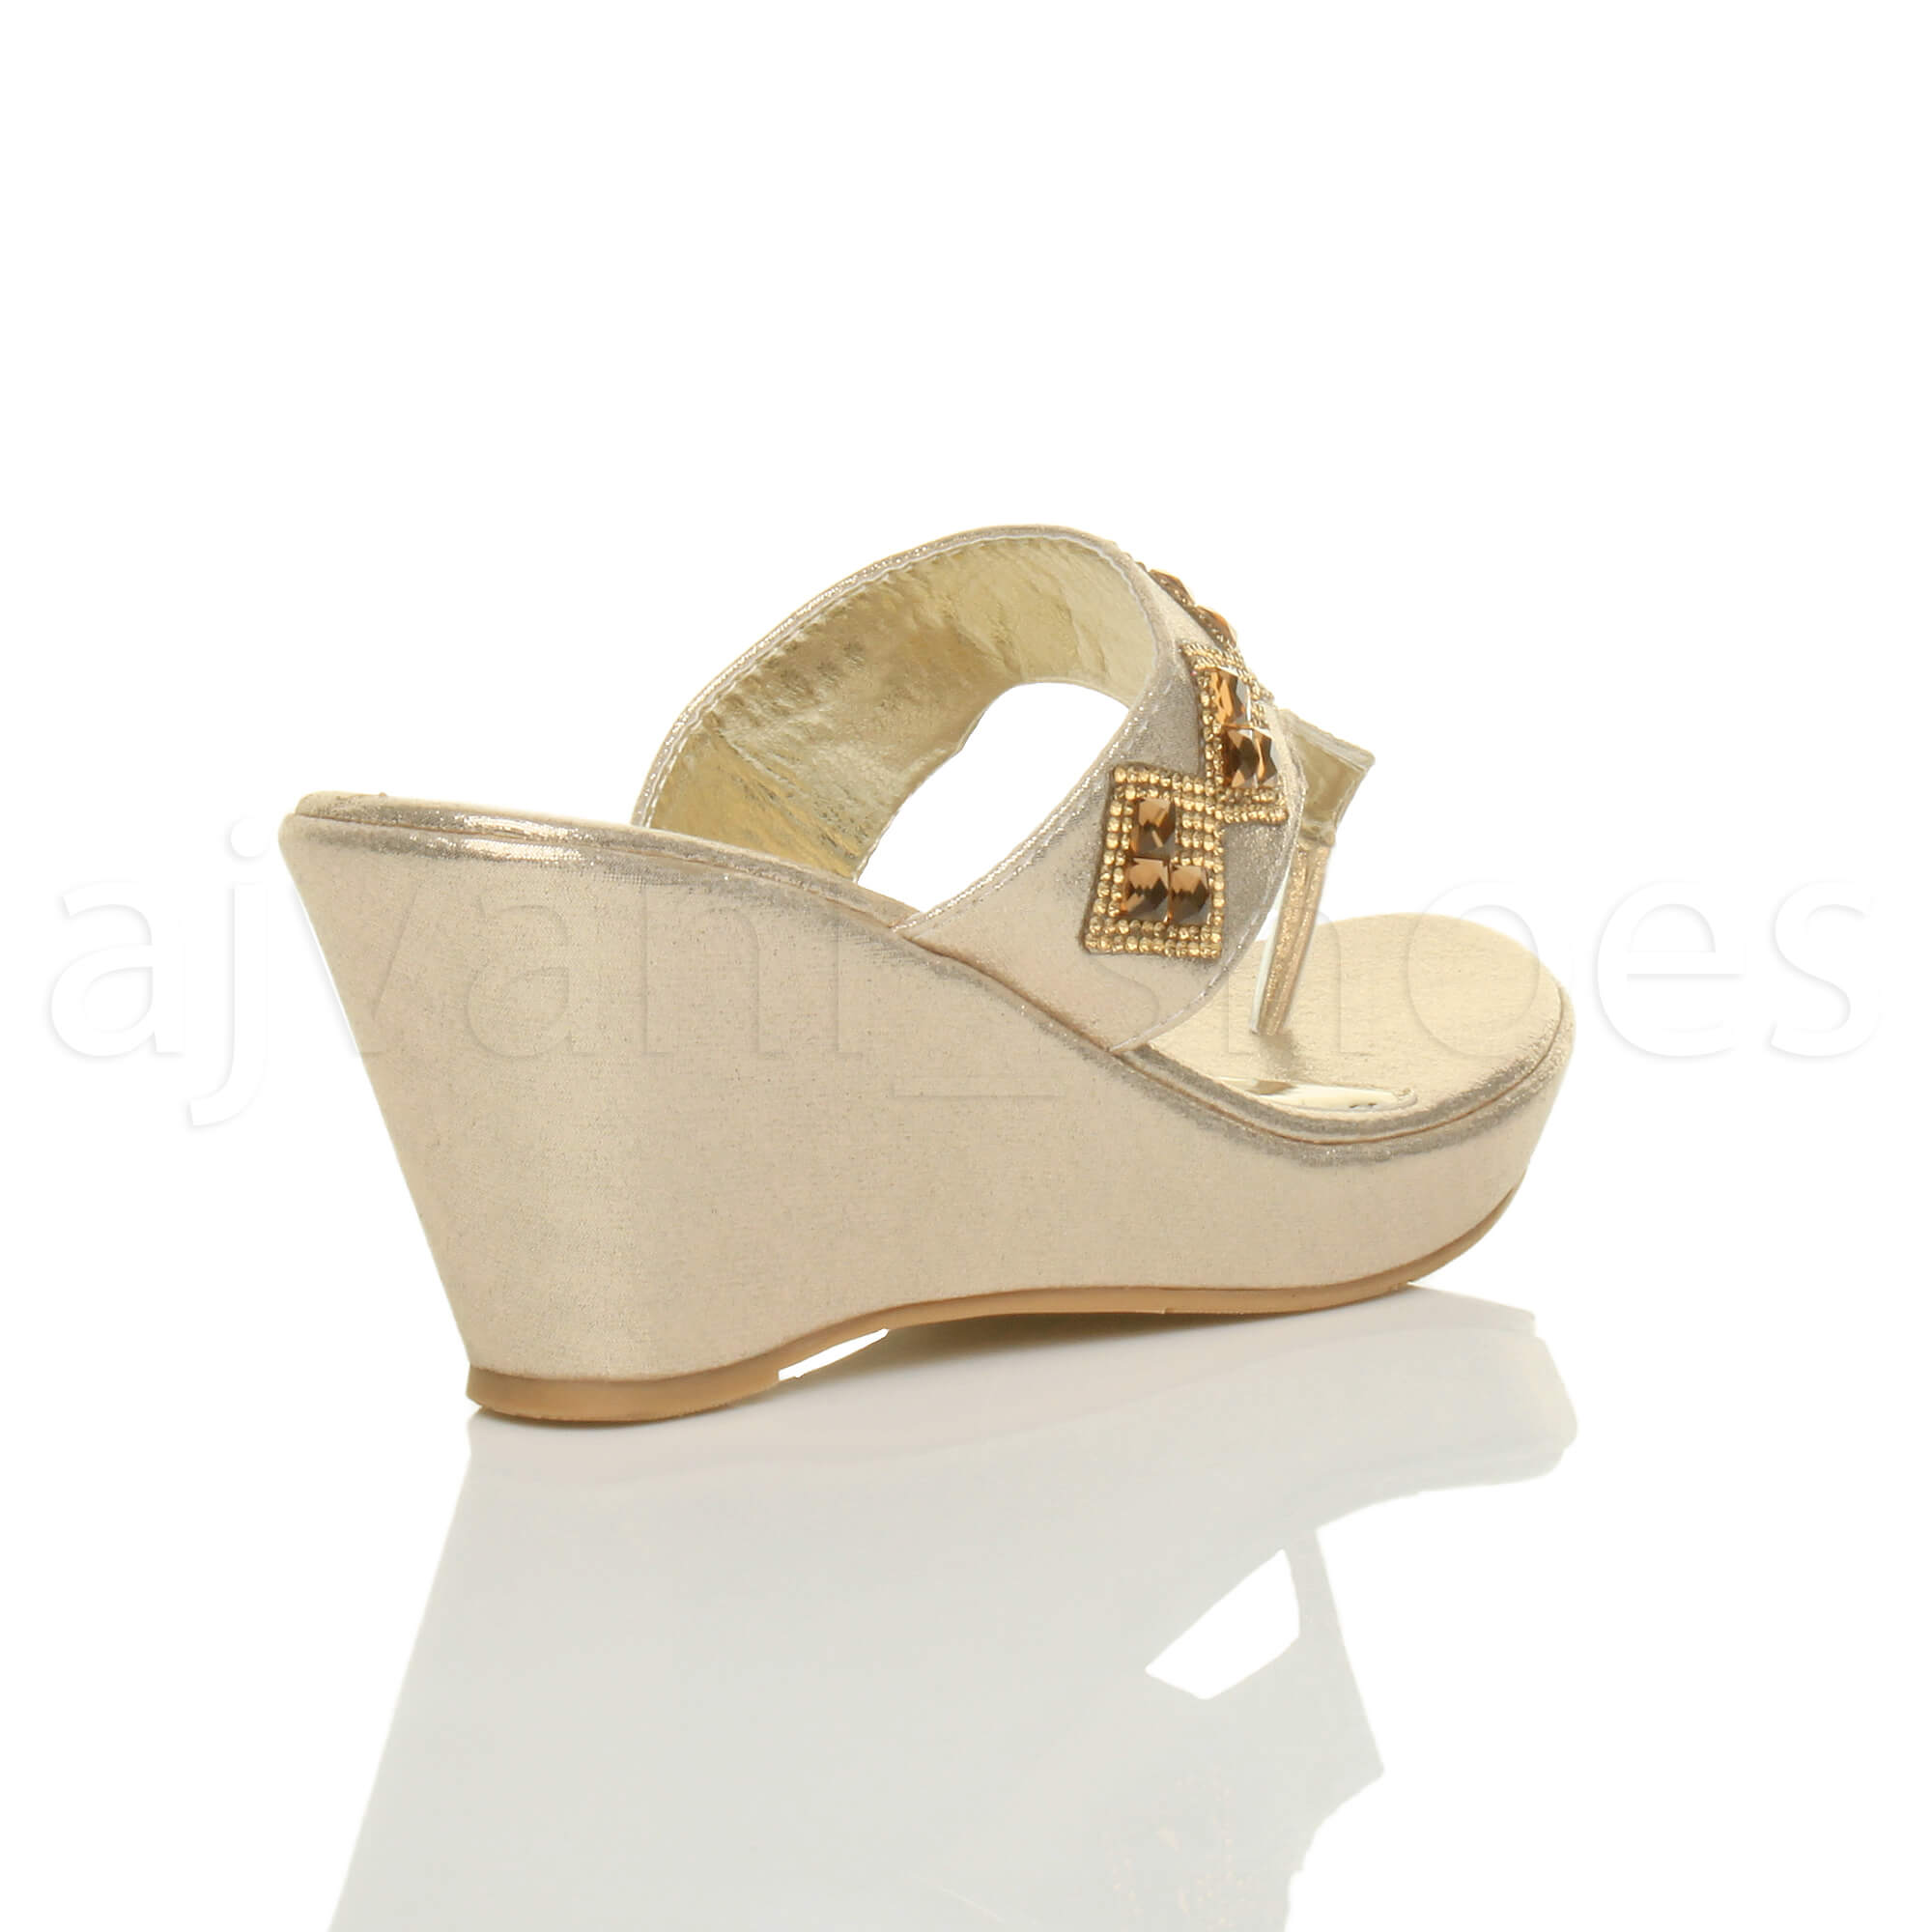 WOMENS-LADIES-HIGH-WEDGE-T-BAR-TOE-POST-DIAMANTE-PLATFORM-MULES-SANDALS-SIZE thumbnail 5